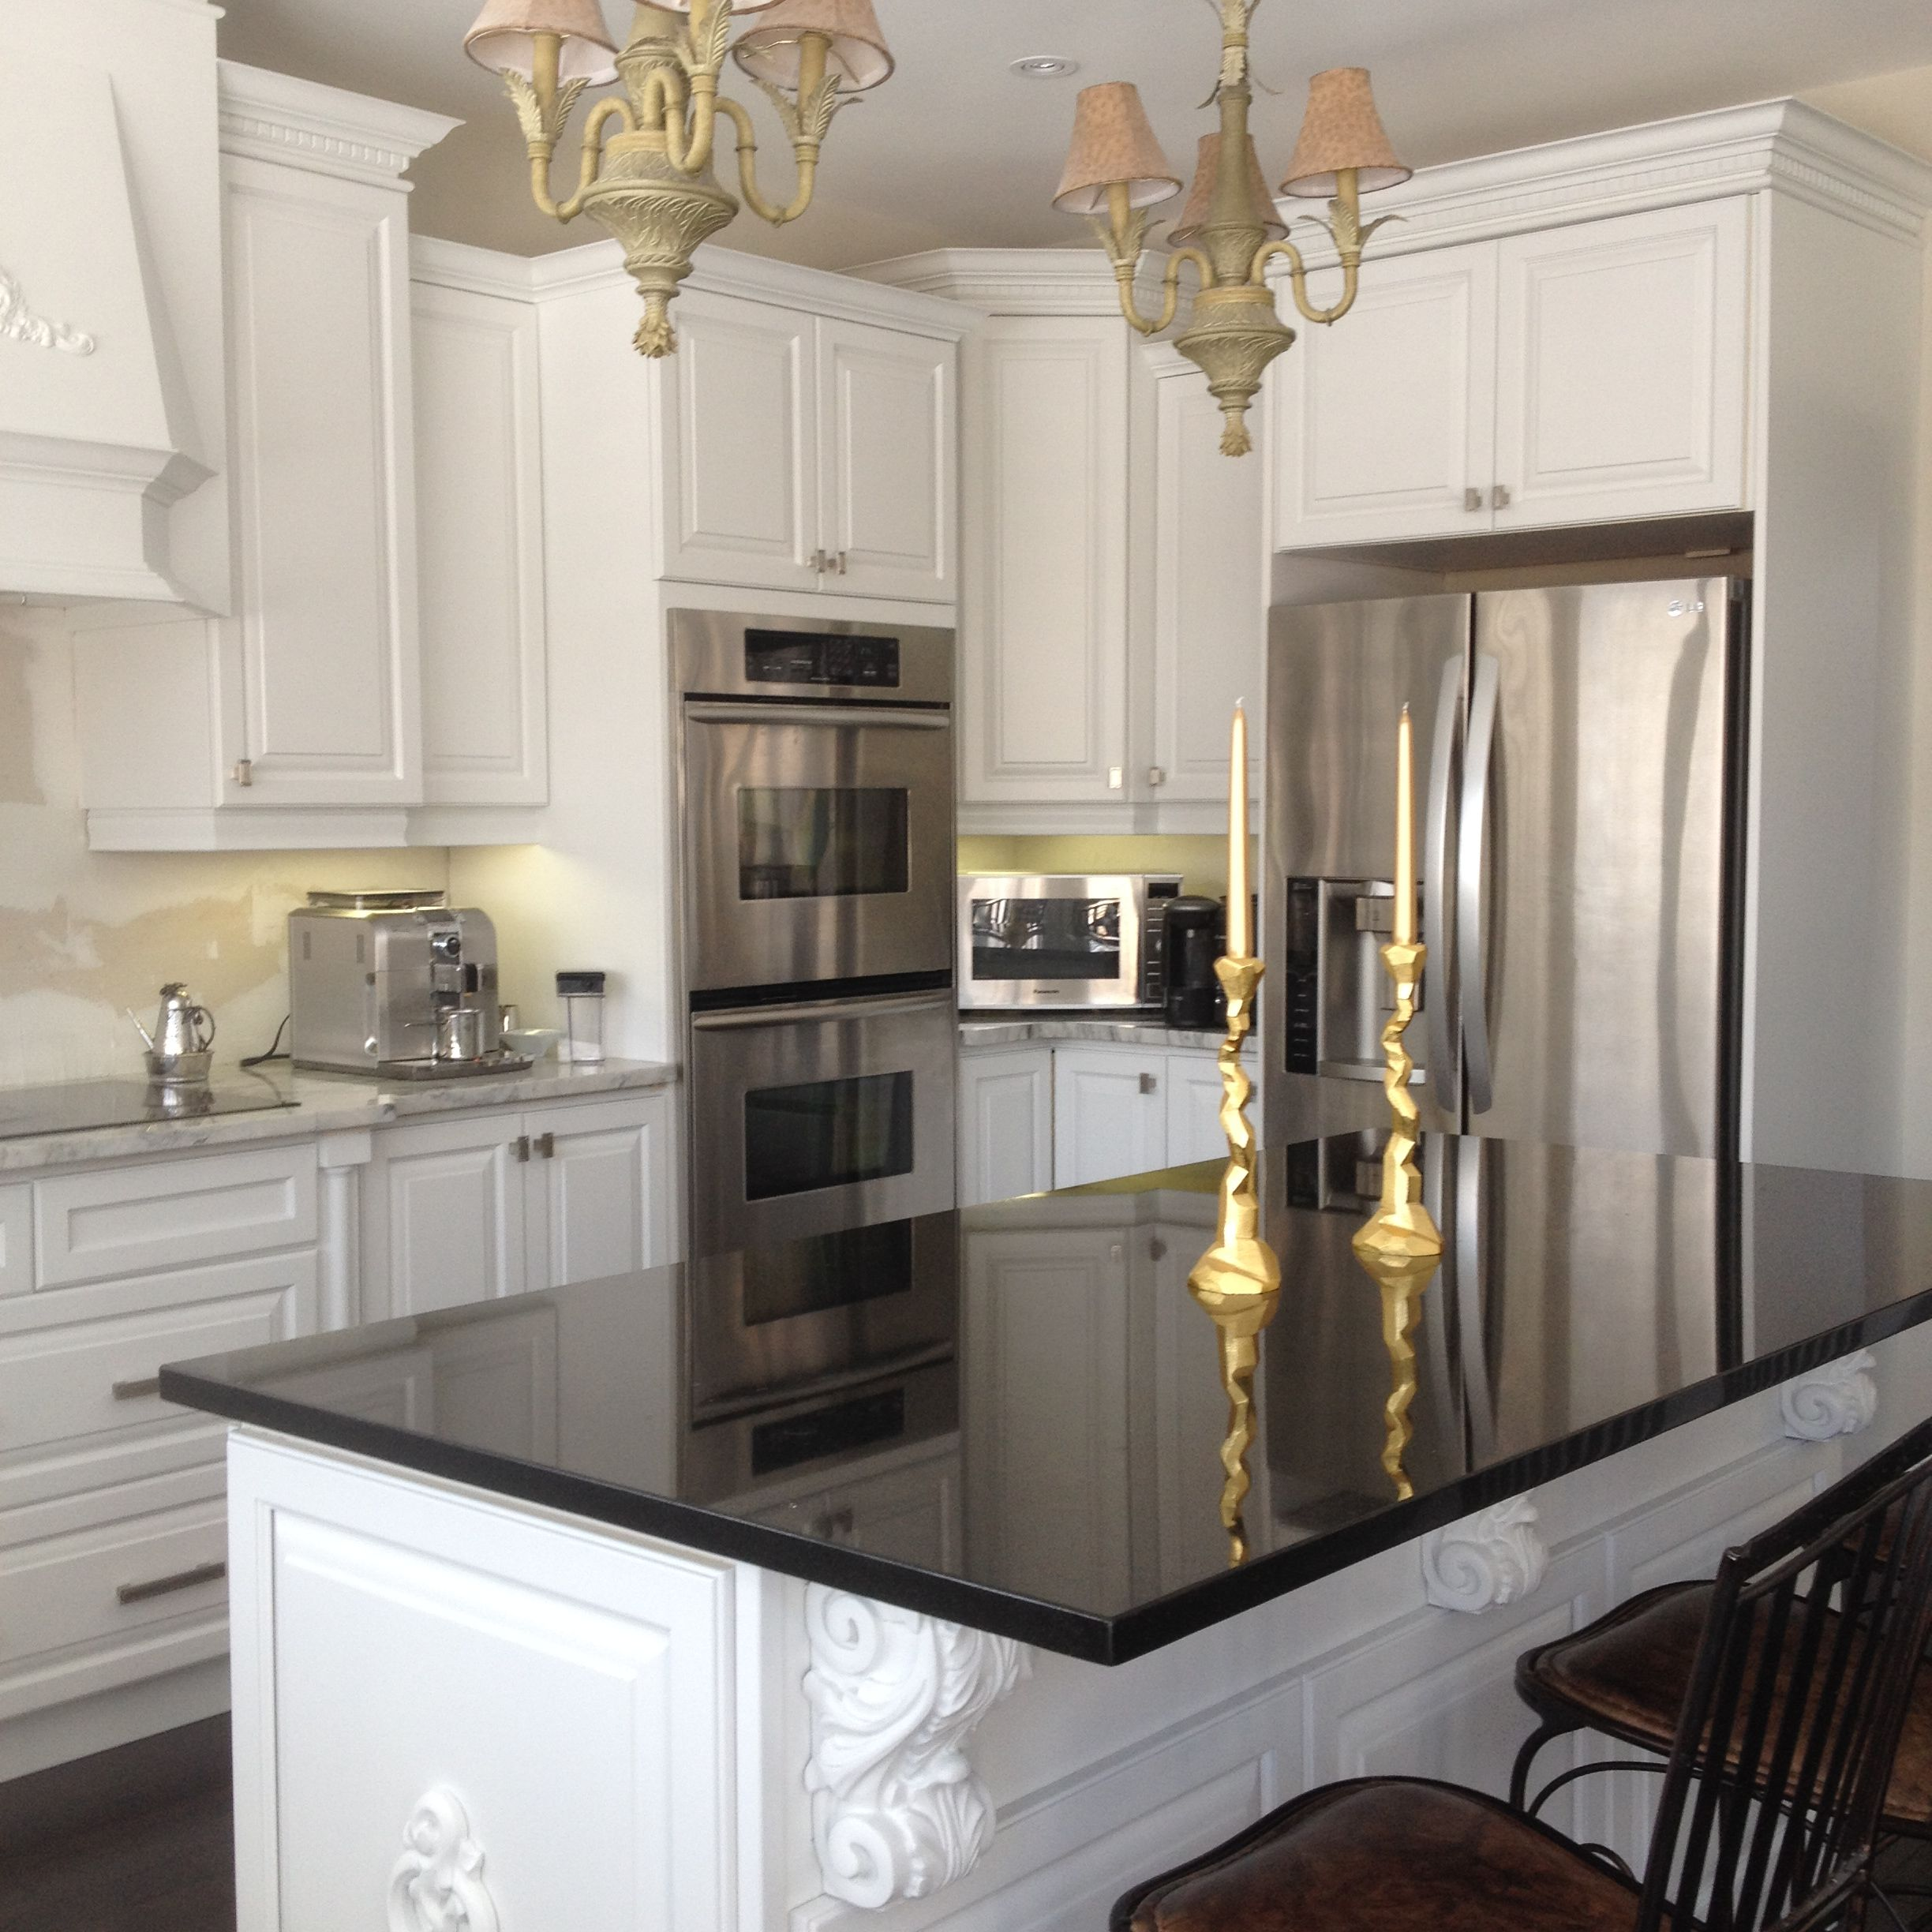 Custom Kitchen Cabinets Mississauga Cc20 Decorators White Cabinets Refinished By Sharrard Painting